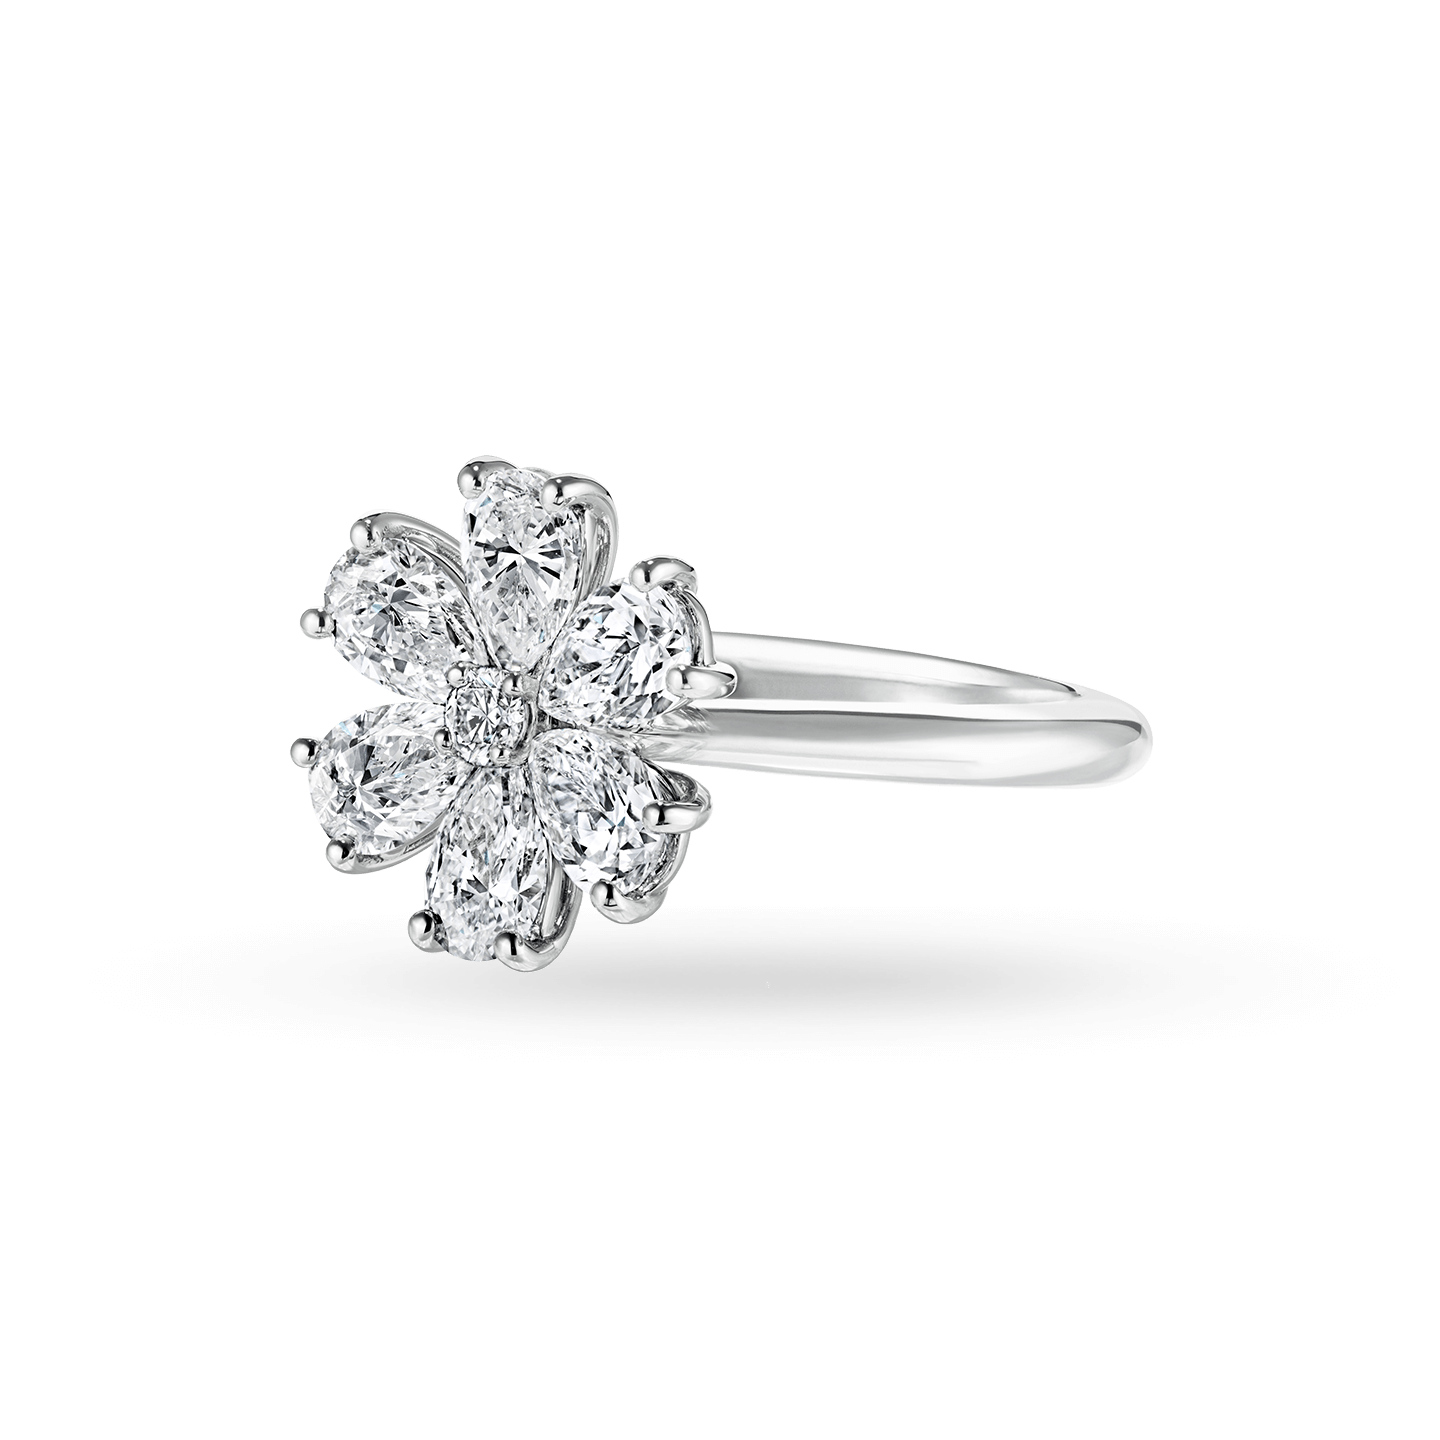 Forget-Me-Not Diamond Ring, Product Image 2